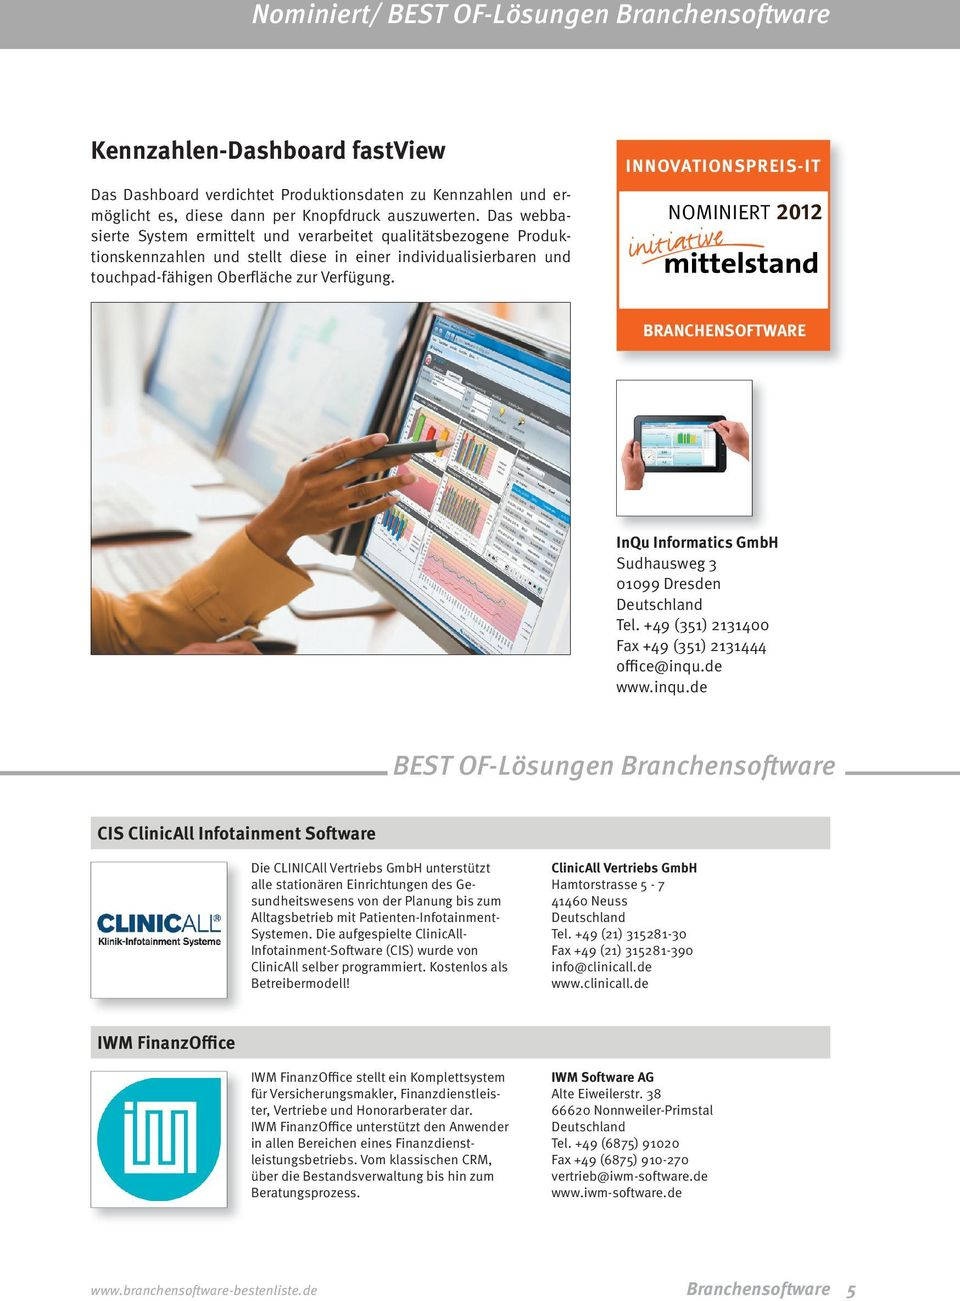 INNOVATIONSPREIS-IT NOMINIERT 2012 BRANCHENSOFTWARE InQu Informatics GmbH Sudhausweg 3 01099 Dresden Tel. +49 (351) 2131400 Fax +49 (351) 2131444 office@inqu.